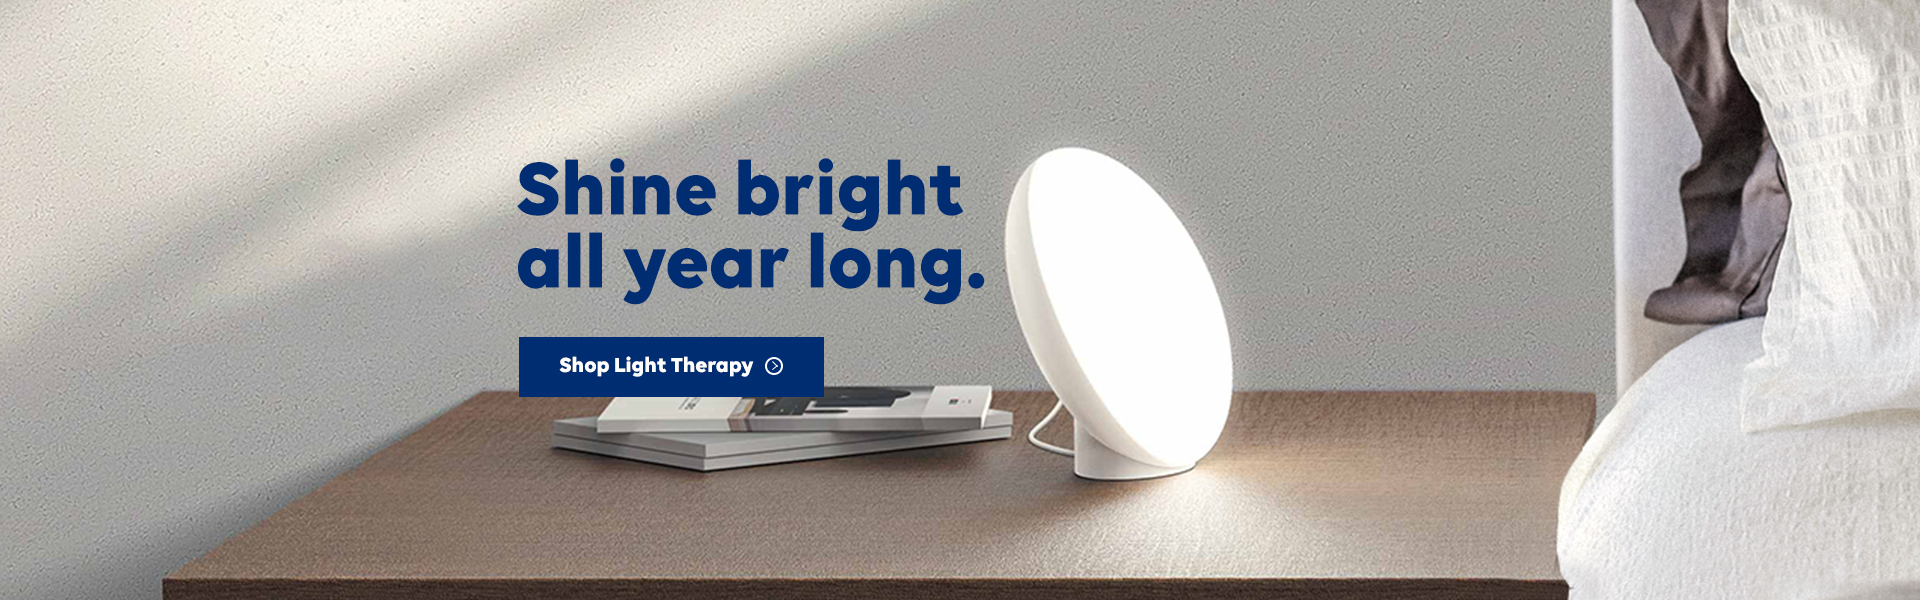 Shine bright all year long. Shop Light Therapy.